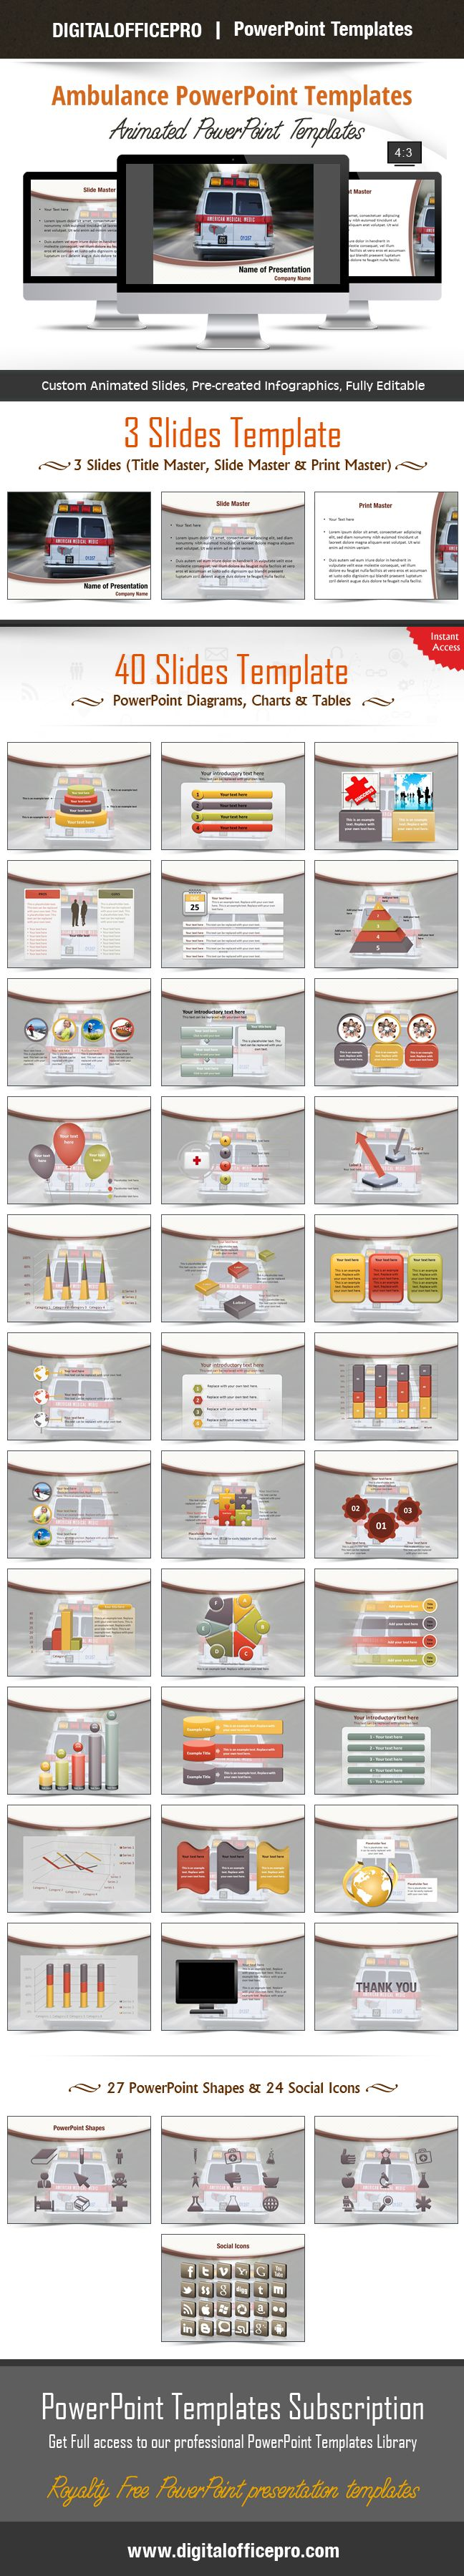 142 best Junyoung images on Pinterest | Infographic, Infographic ...